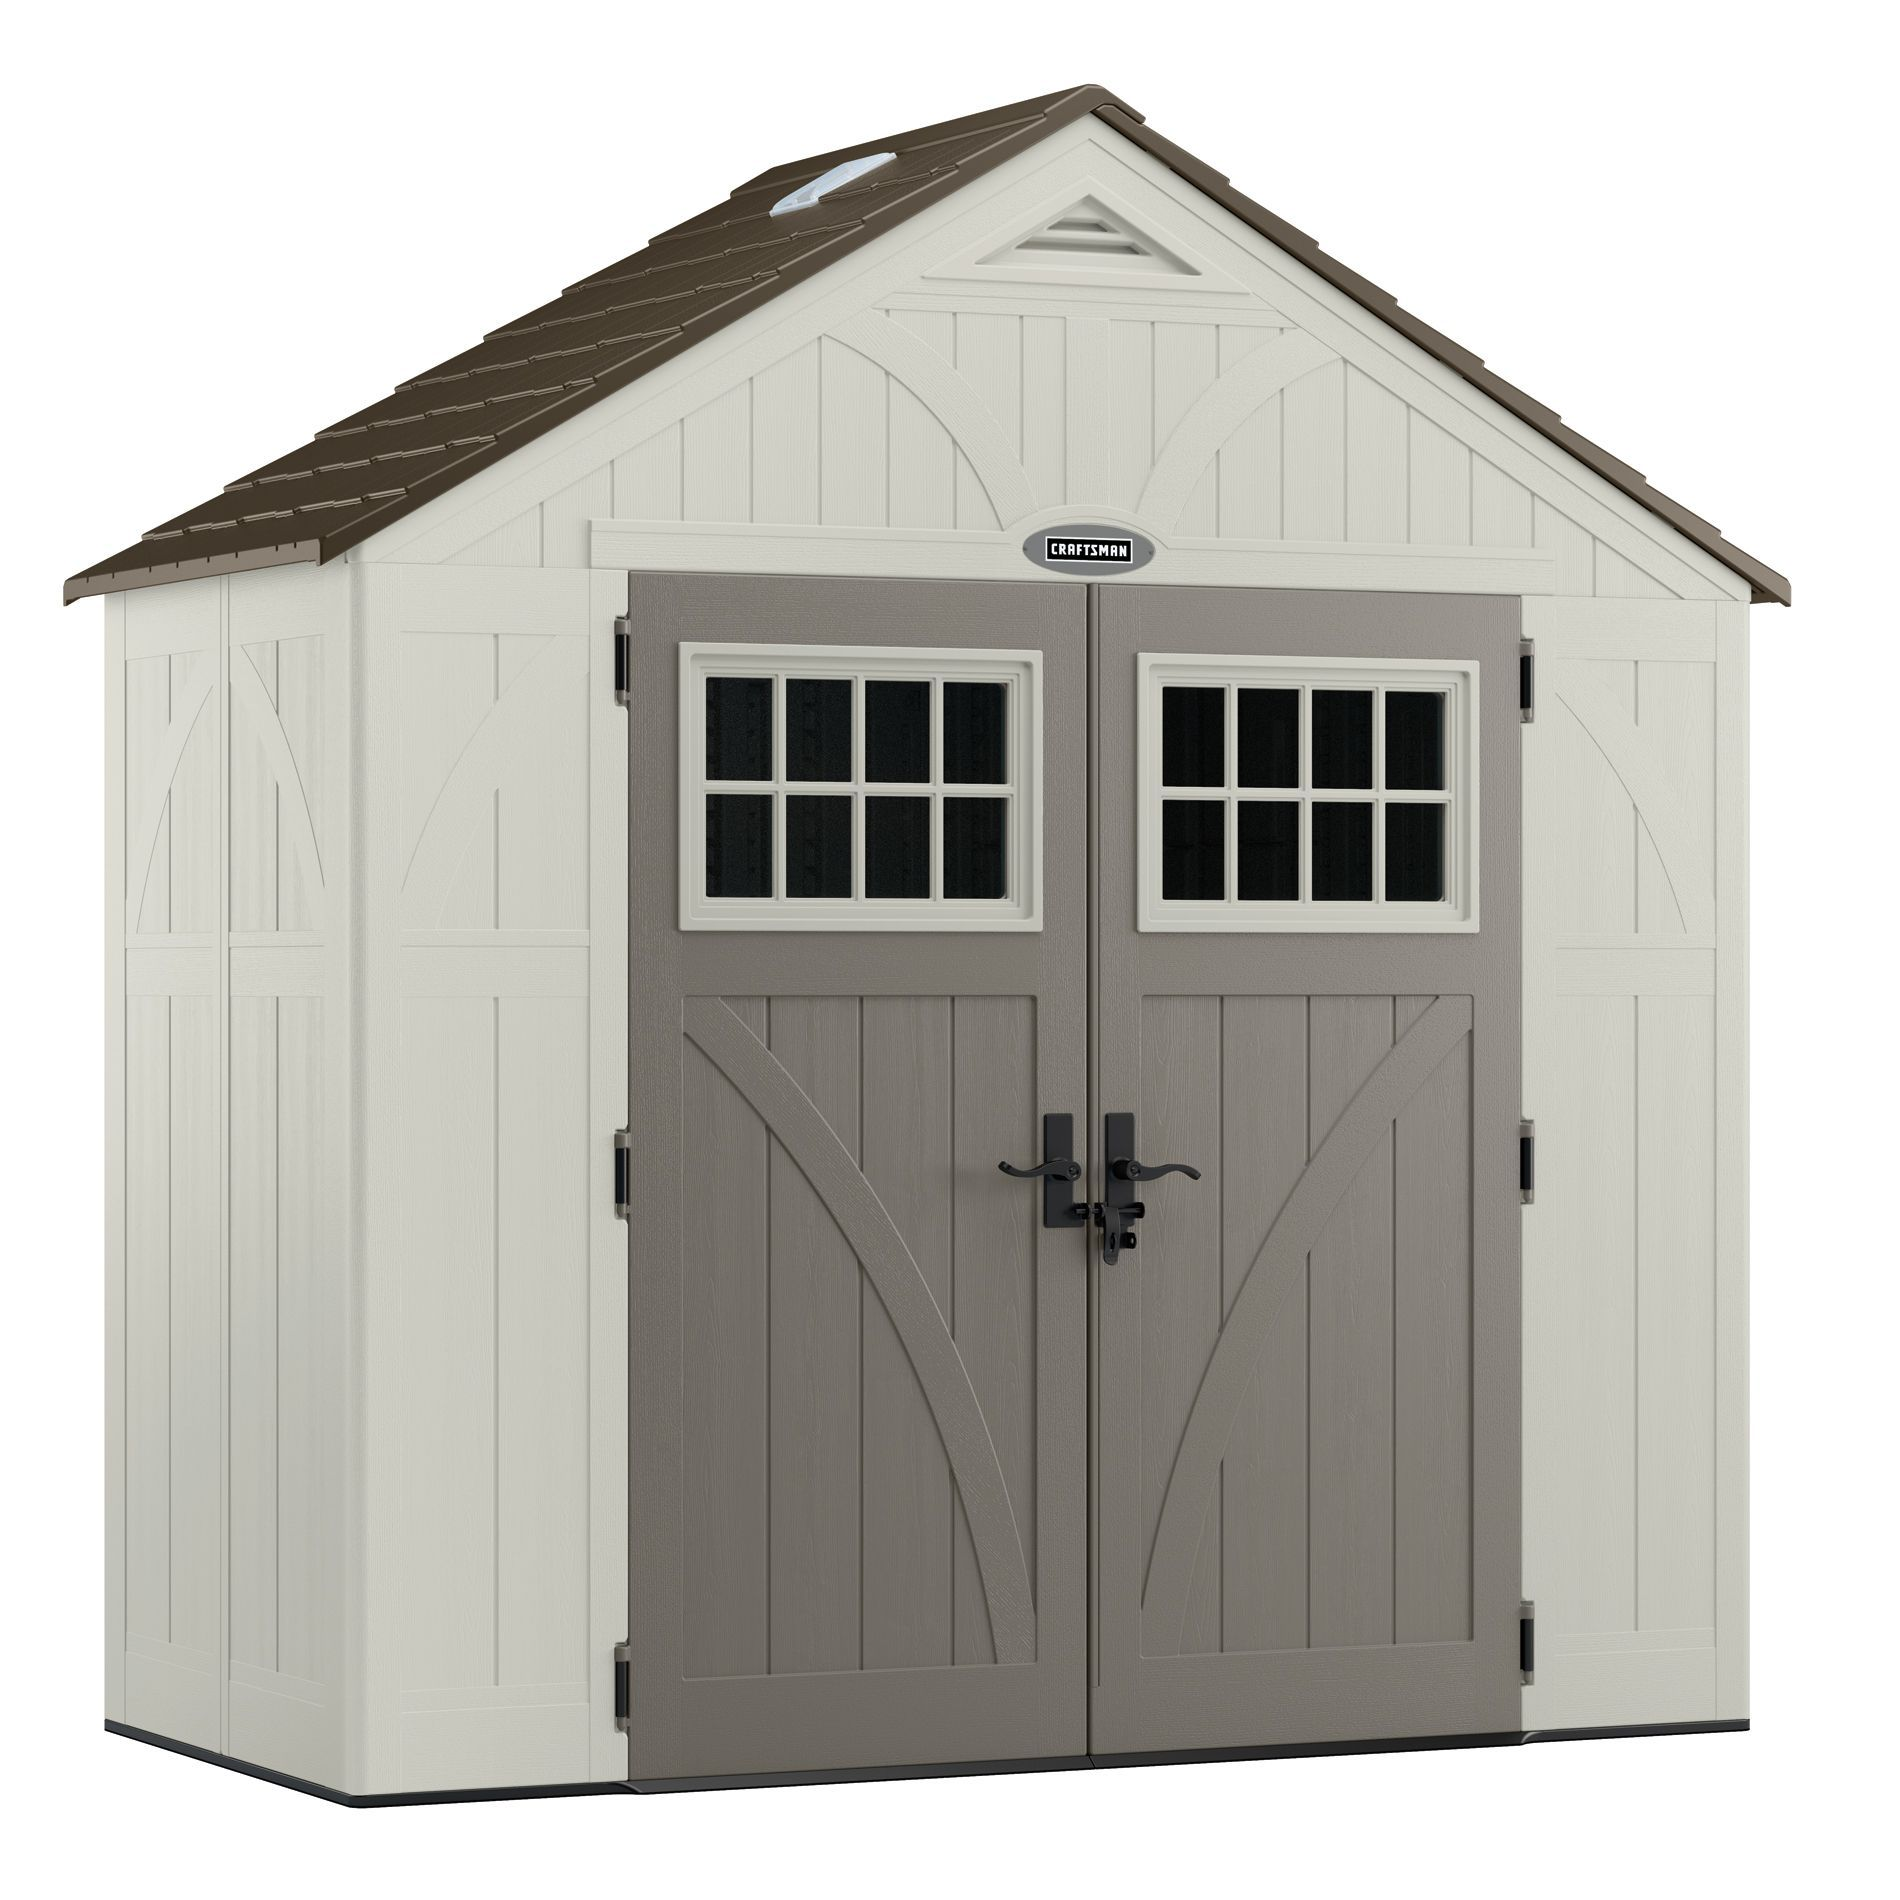 buildings gable amp oktober rubbermaid with free sheds d self roughneck plans shipping storage shed